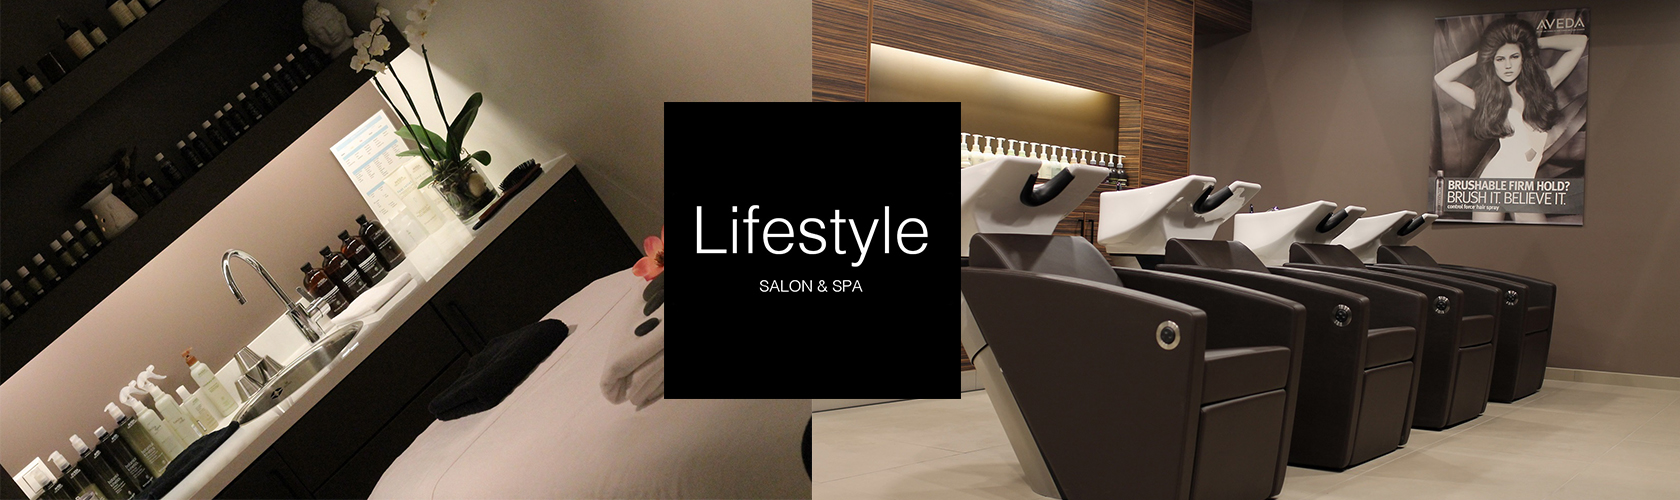 Lifestyle Salon